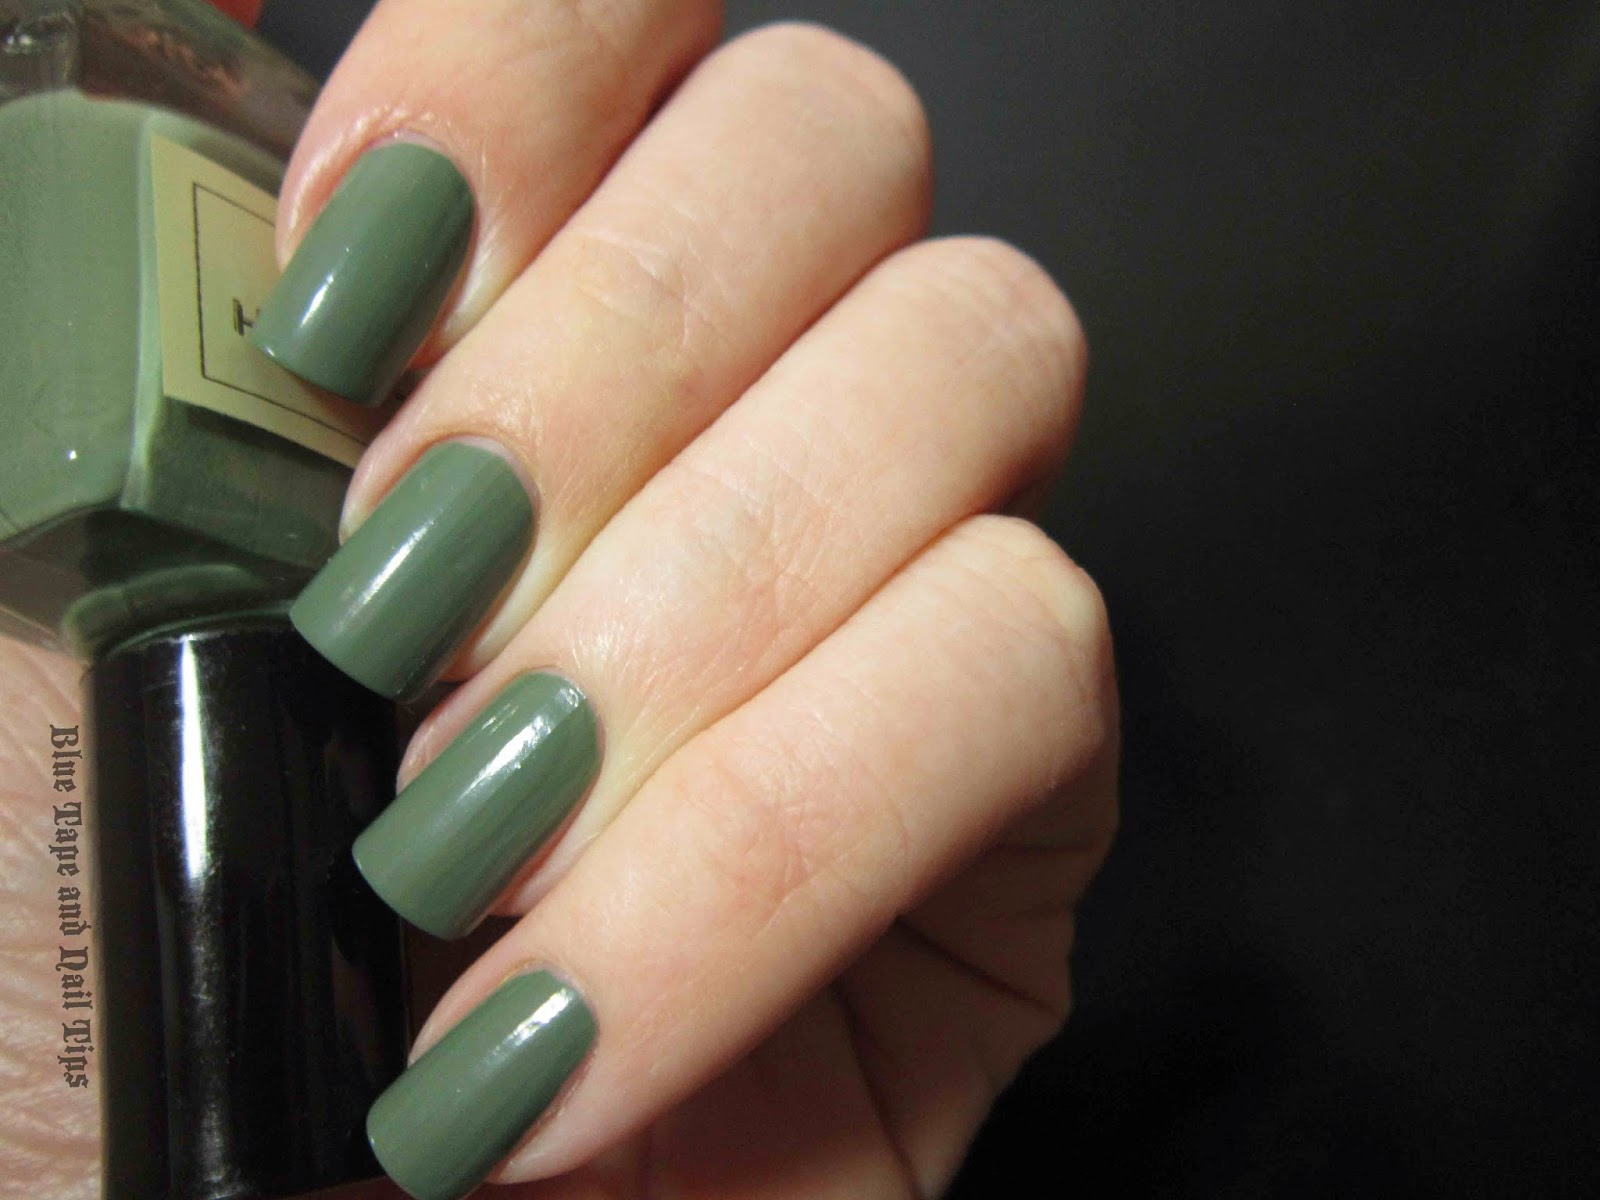 Blue Tape and Nail Tips: January 2014